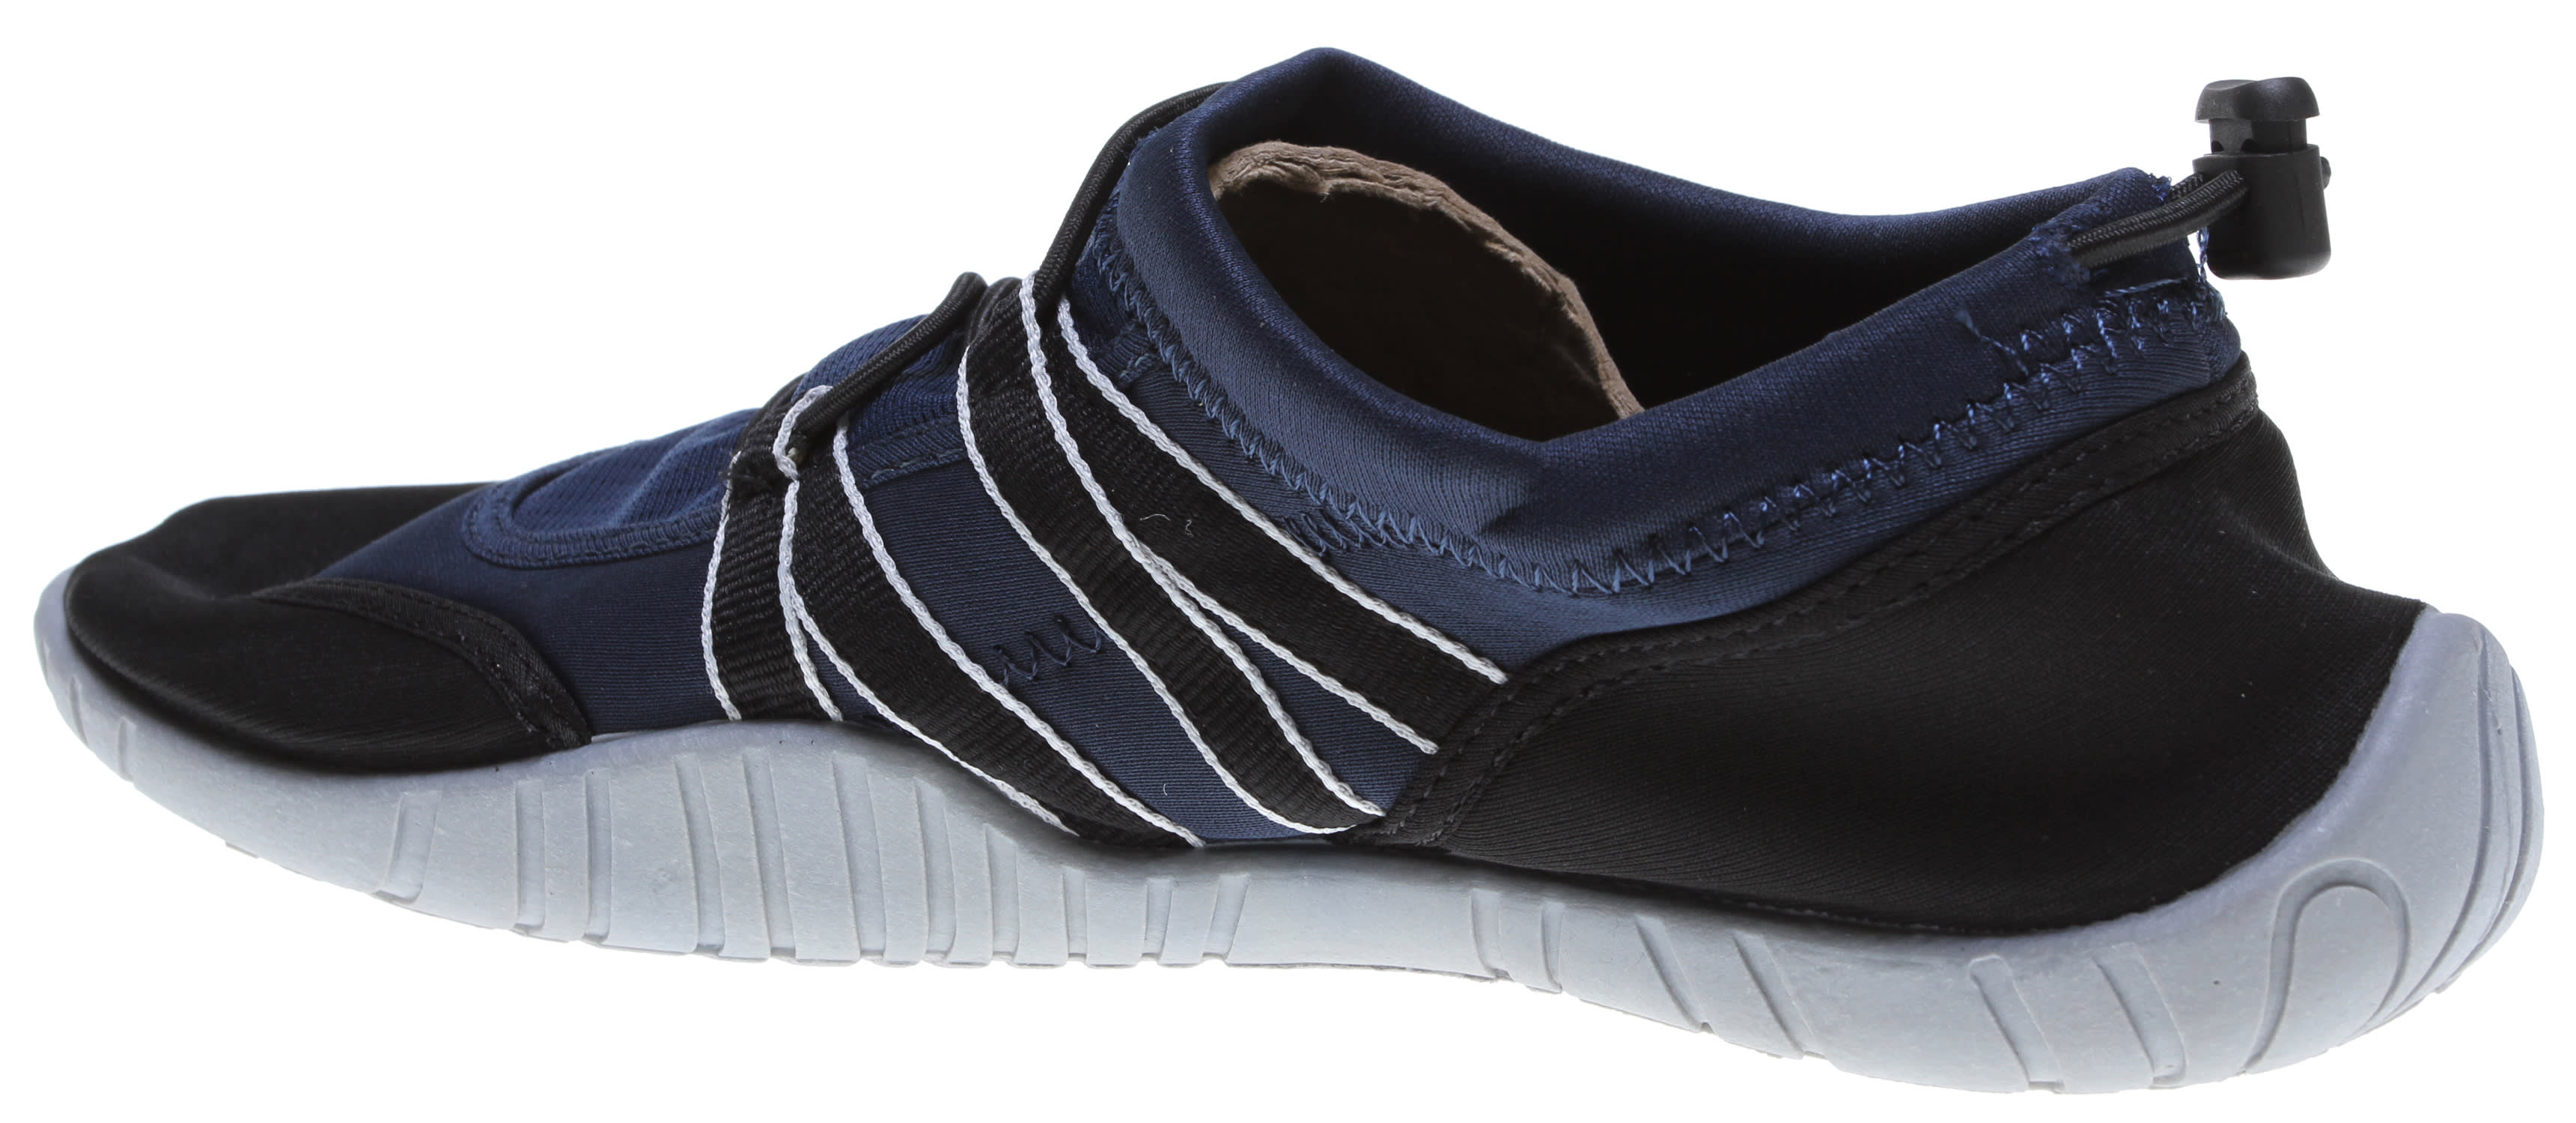 On Sale Rafters Cabo Water Shoes up to 55% off